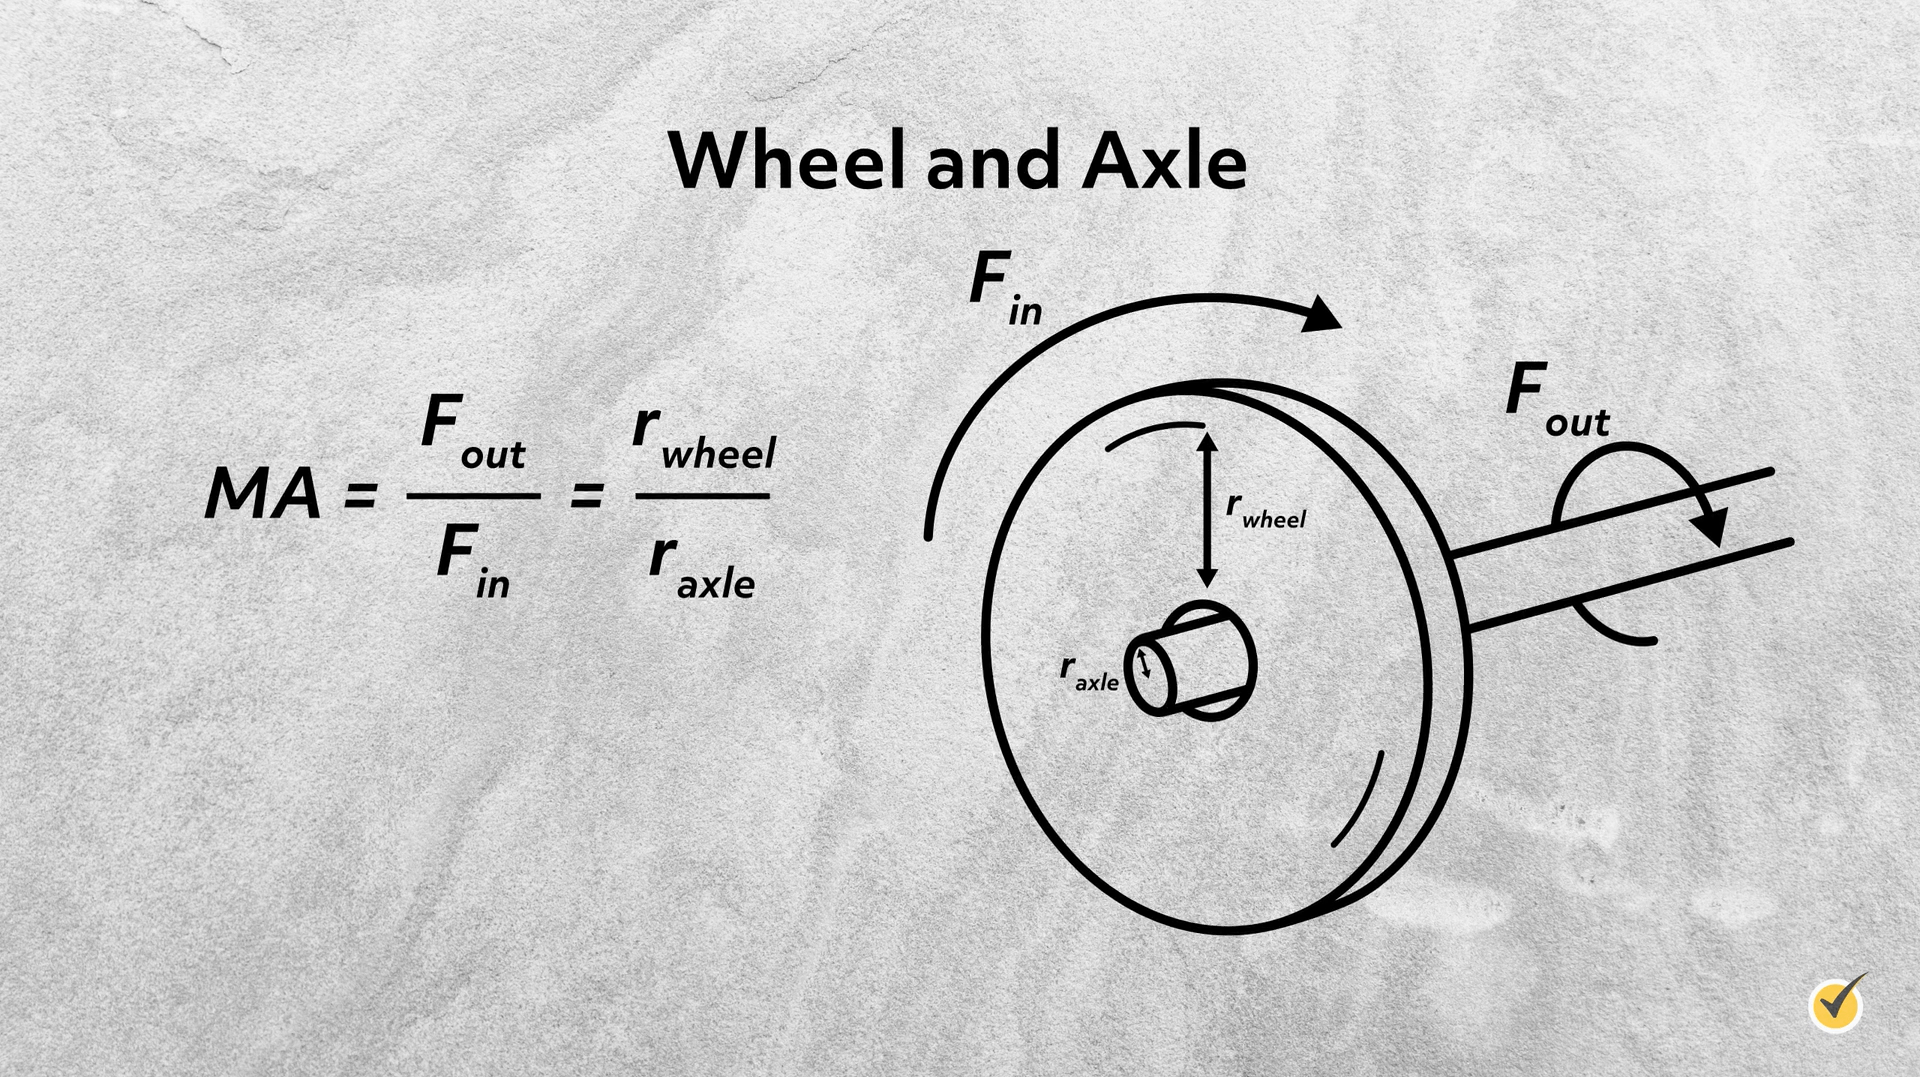 Image of wheel and axle.